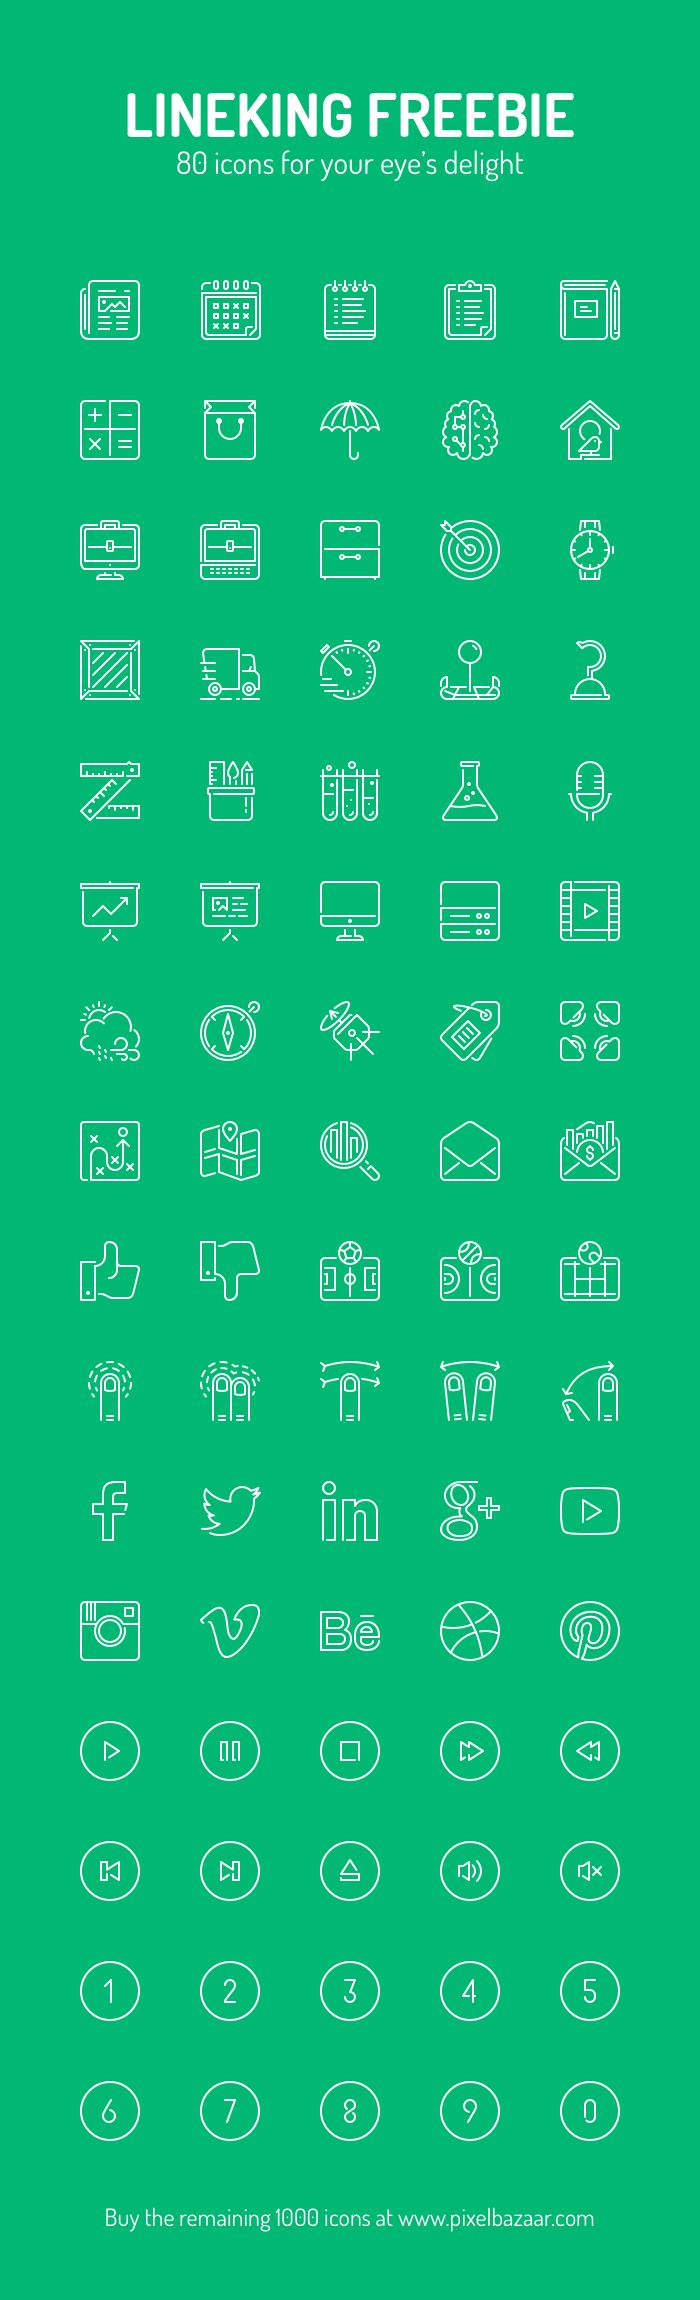 Icons truly make the world go round. The world wide web, that is. While the basic idea of the icon hasn't changed over the years, the amount of icons in use certainly has. Every website, and especially mobile apps, take full advantage of the icon graphic to get across a feature or function without the use of anything but a small graphic. This awesome set, from Pixel Bazaar, features 80 different high-quality professional icons to add to your site. Free for personal and commercial use!